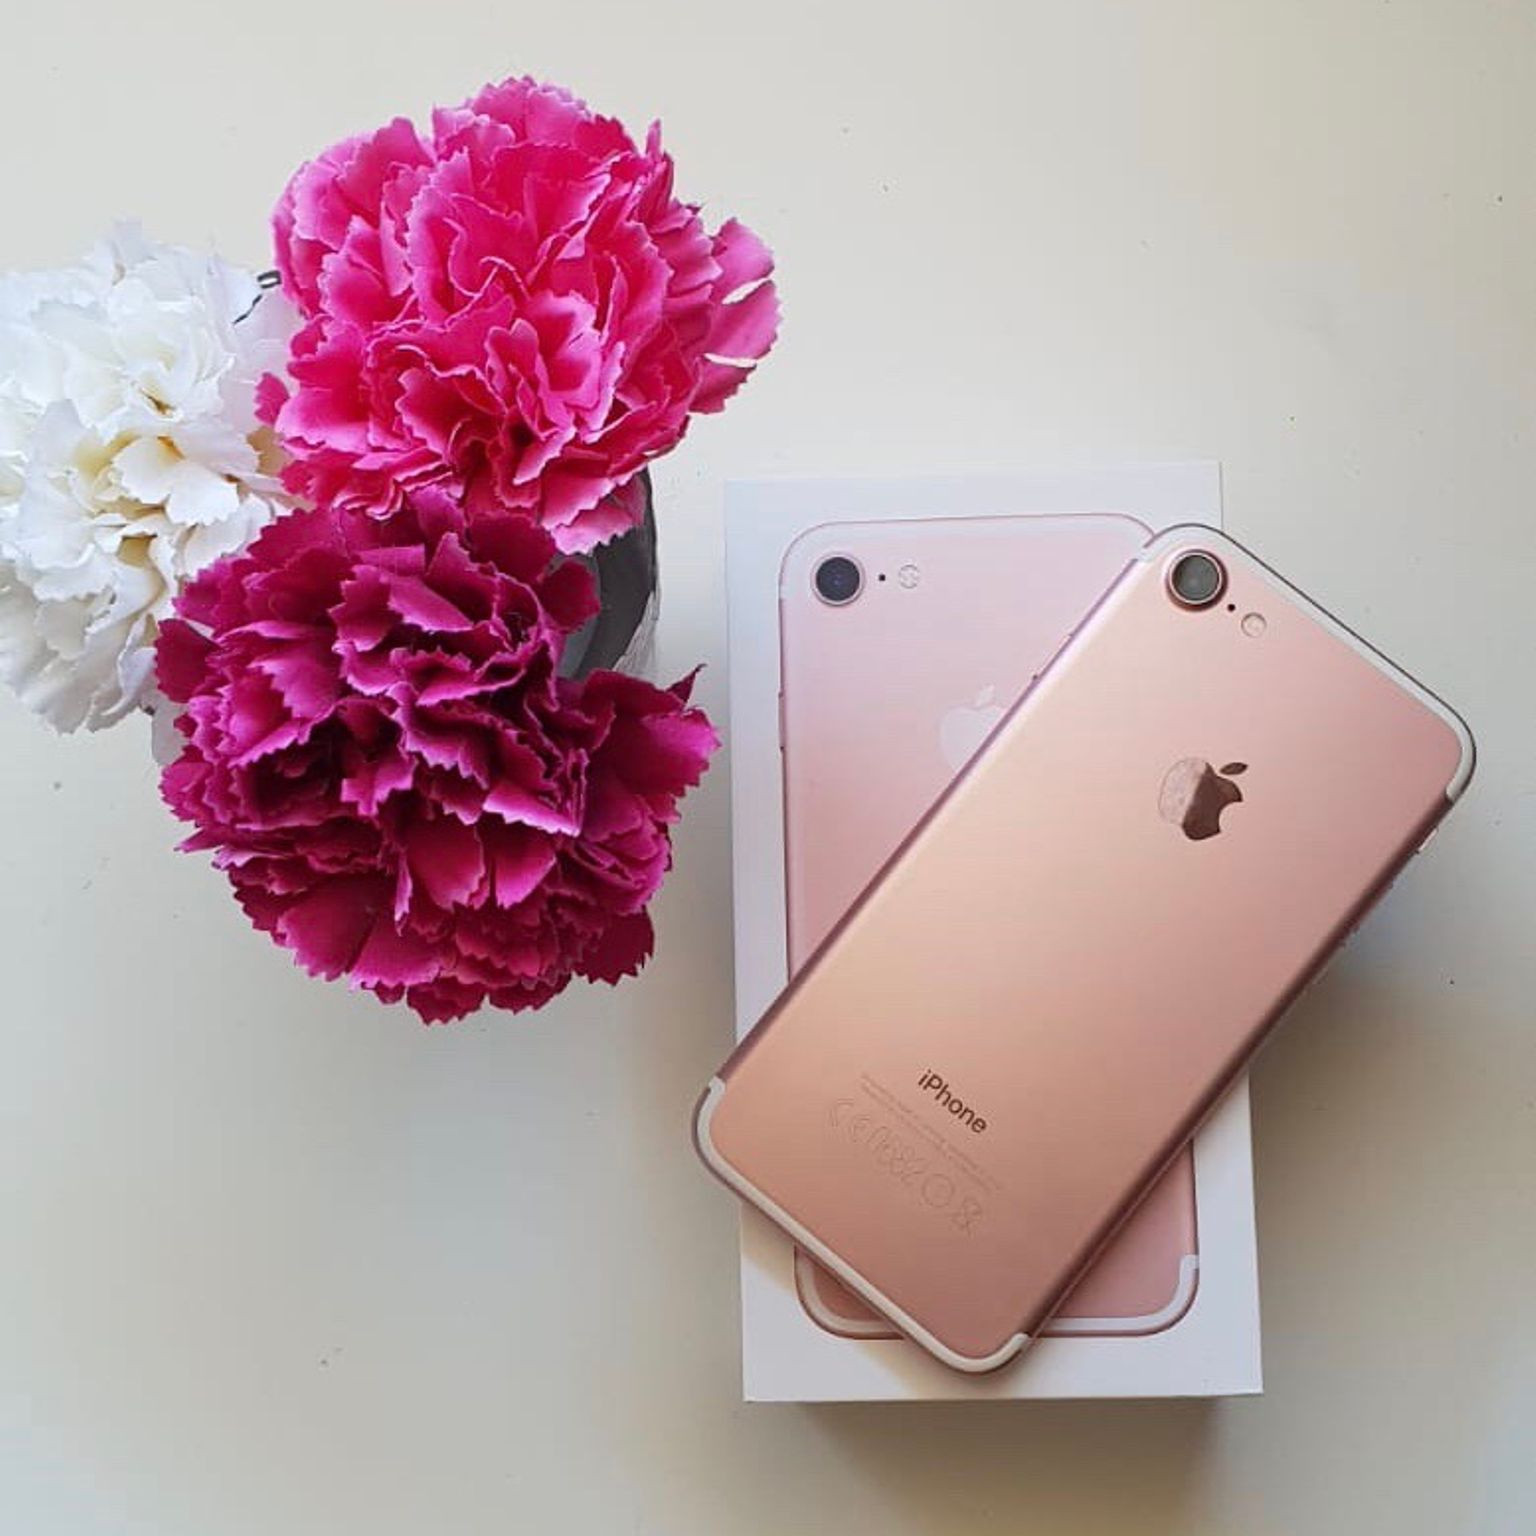 iPhone 7 128GB Rosegold 286ad9bf